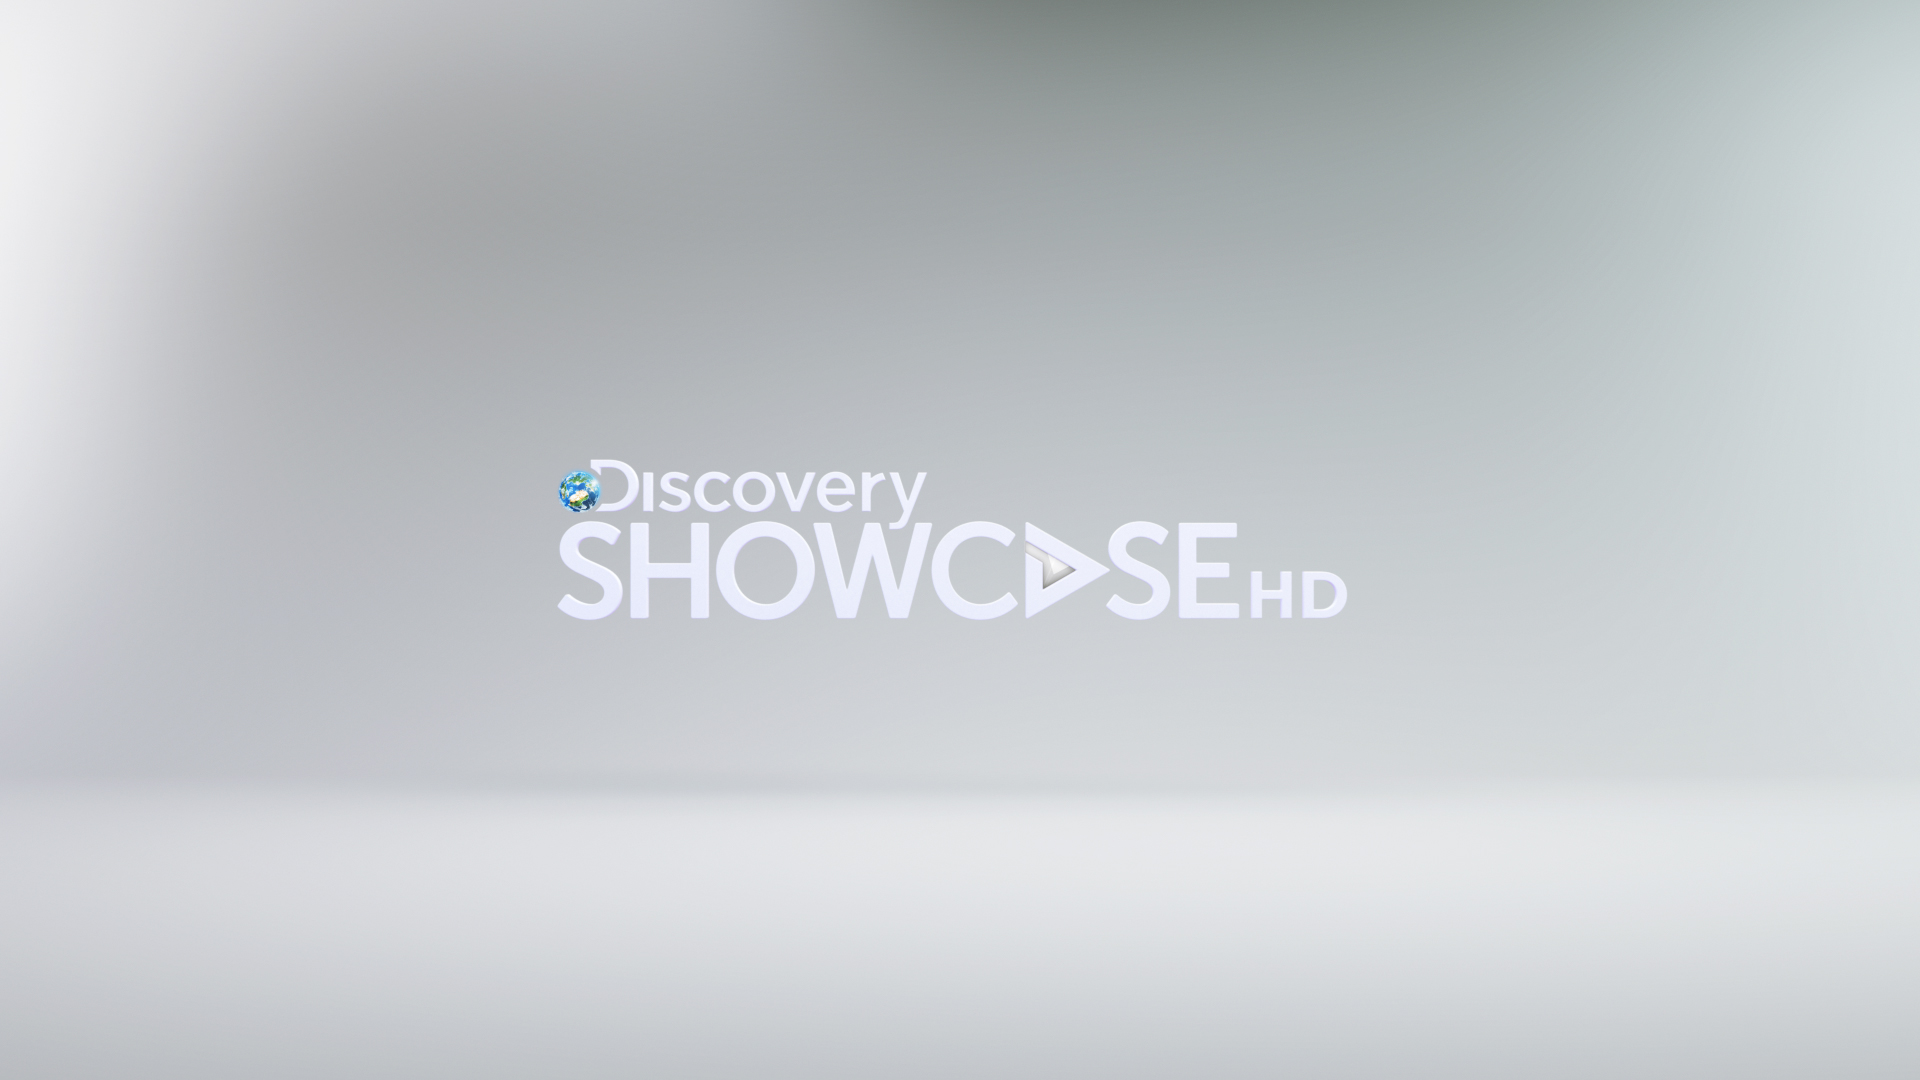 Discovery Showcase